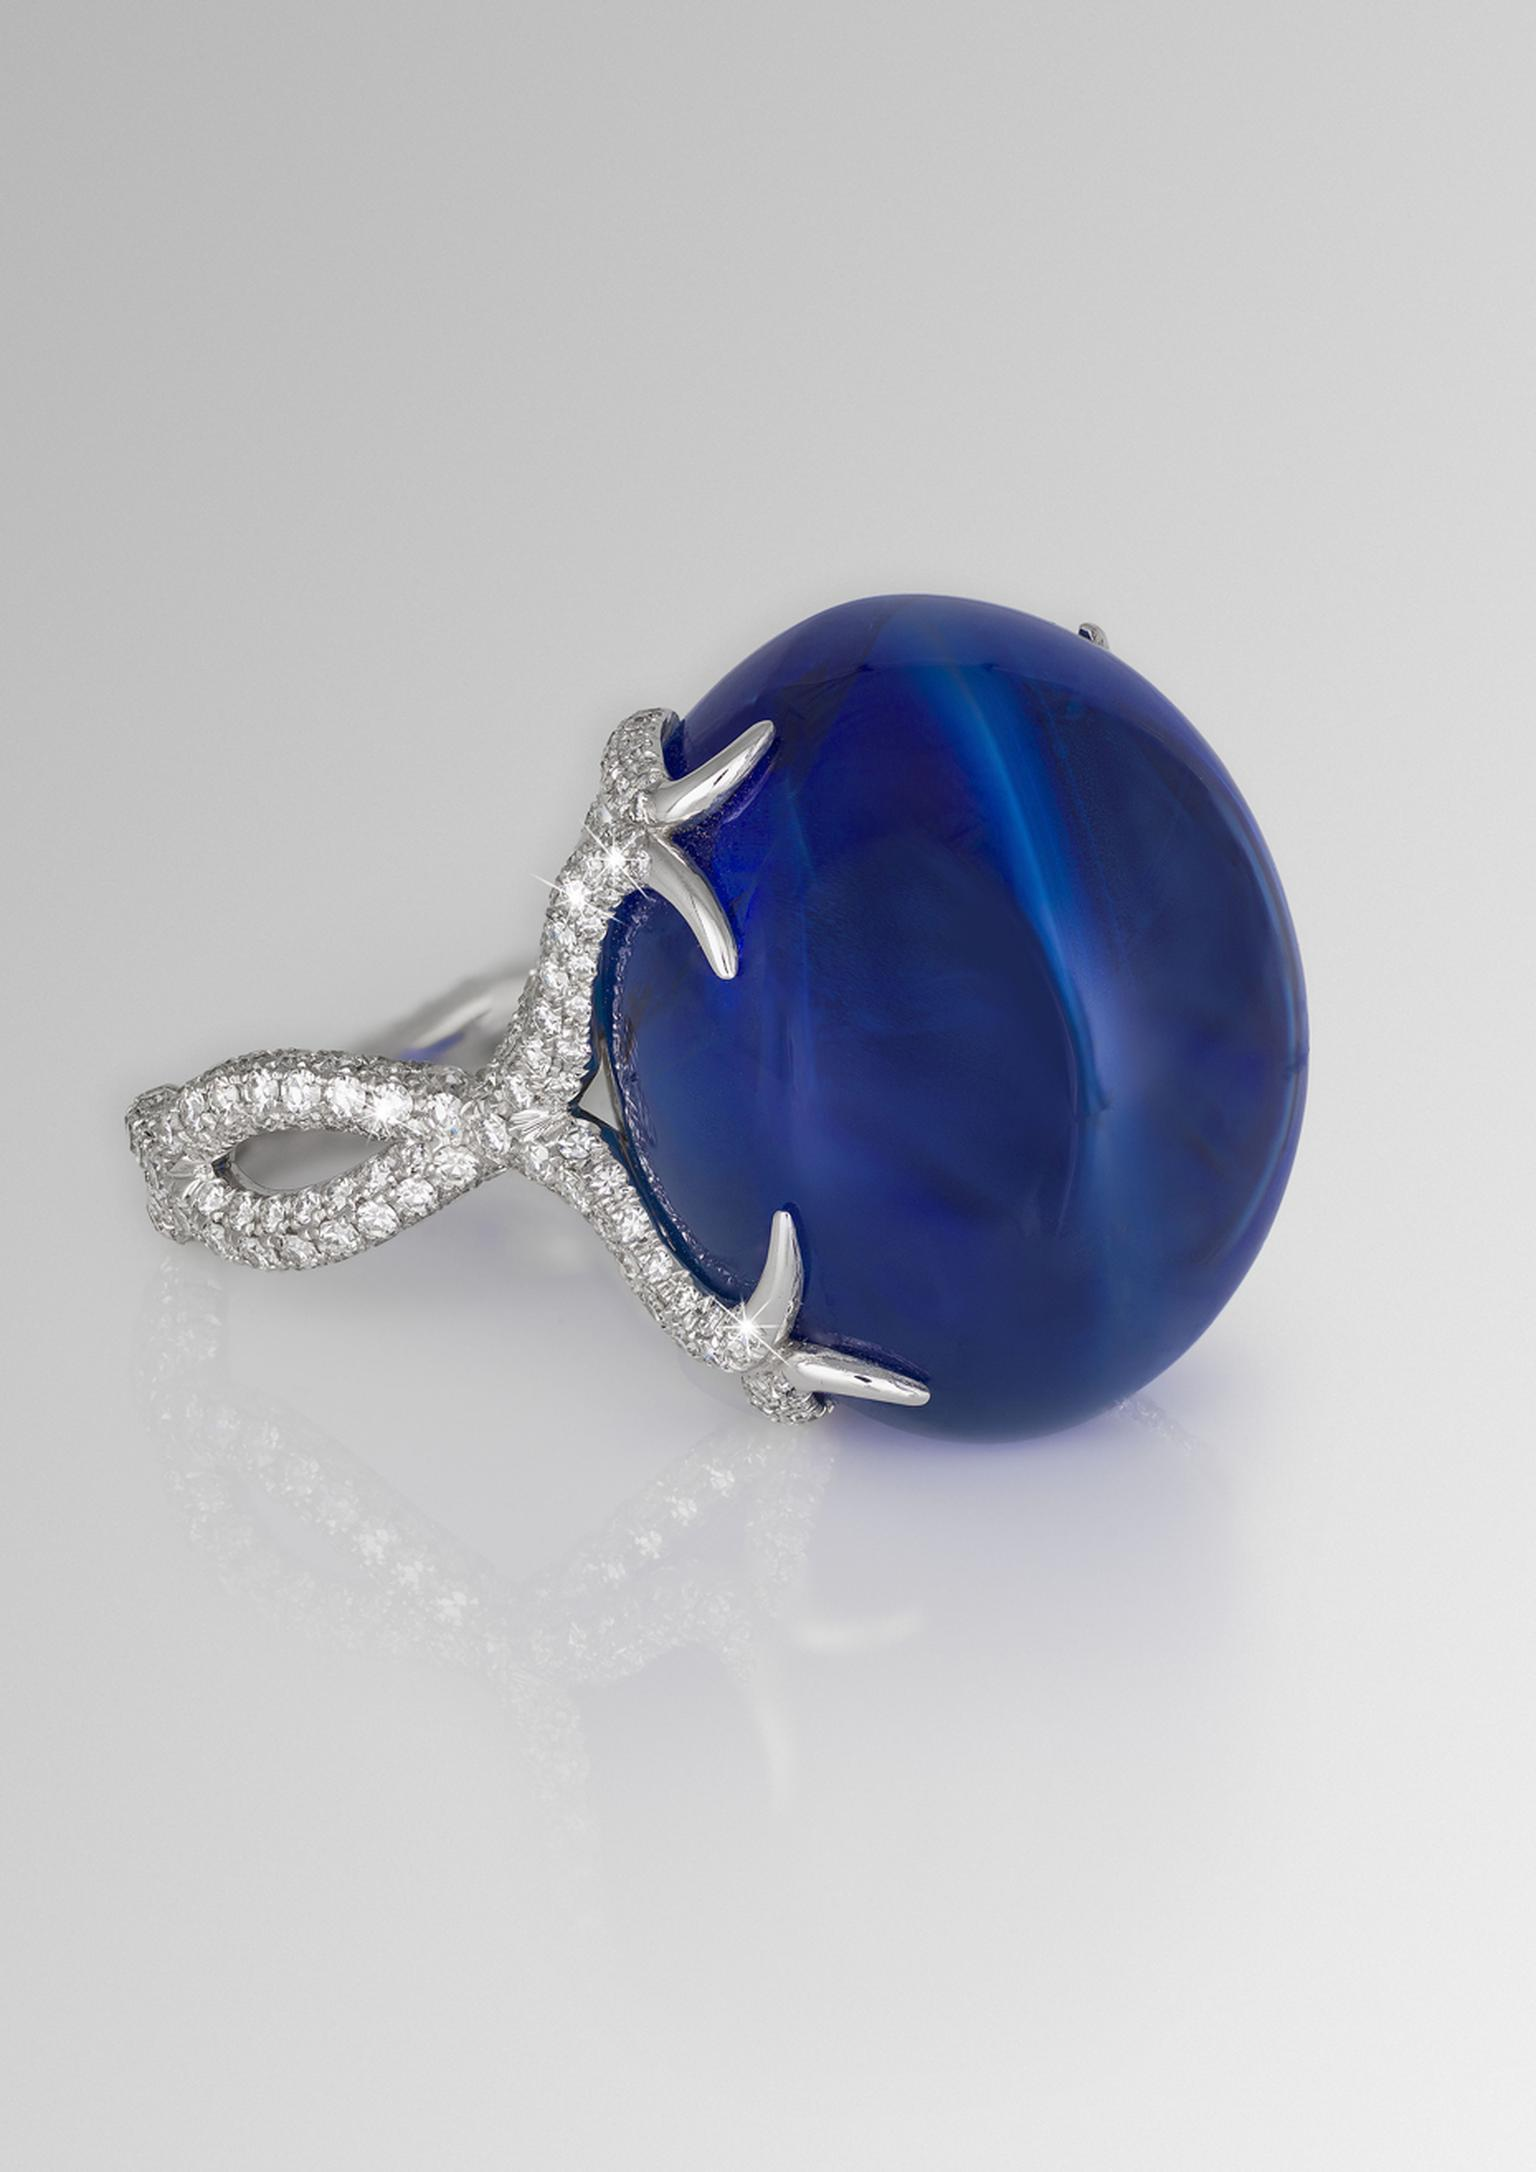 David Morris ring featuring a central 64.55ct blue Burmese double cabochon sapphire with a twisting diamond band.